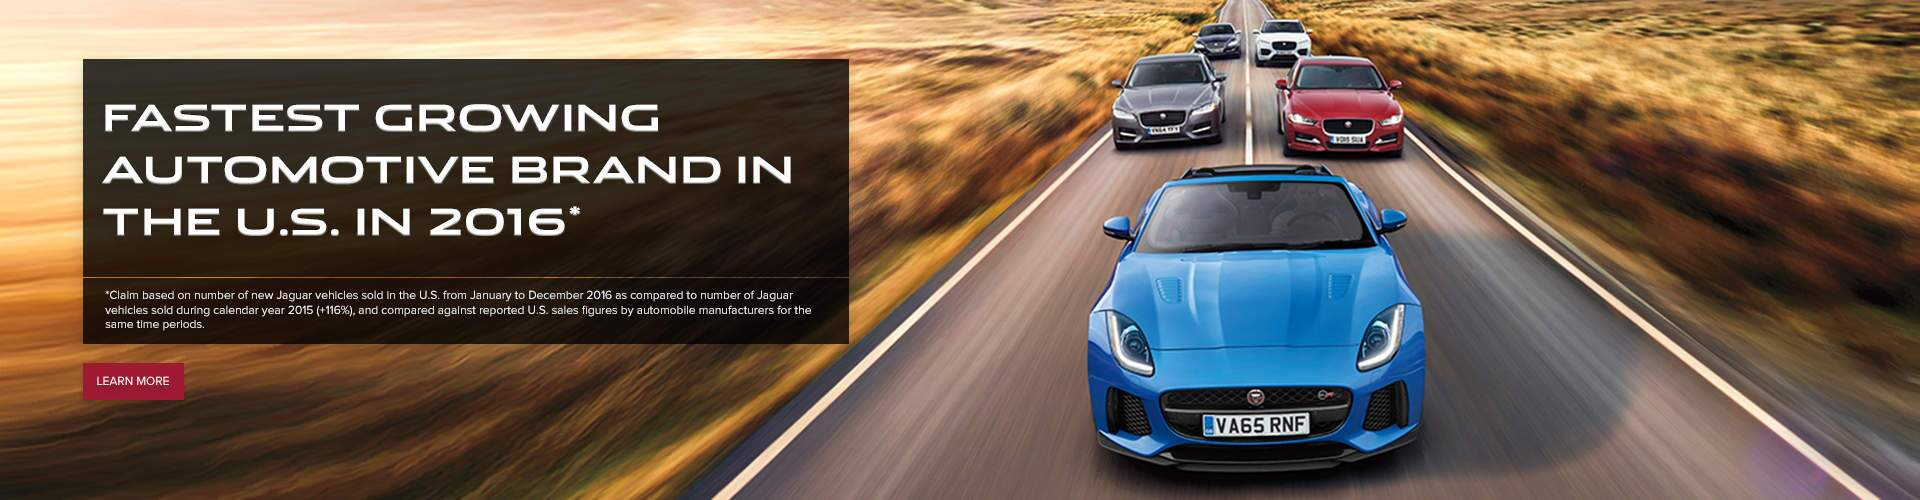 Jaguar Fastest Growing Brand 2016